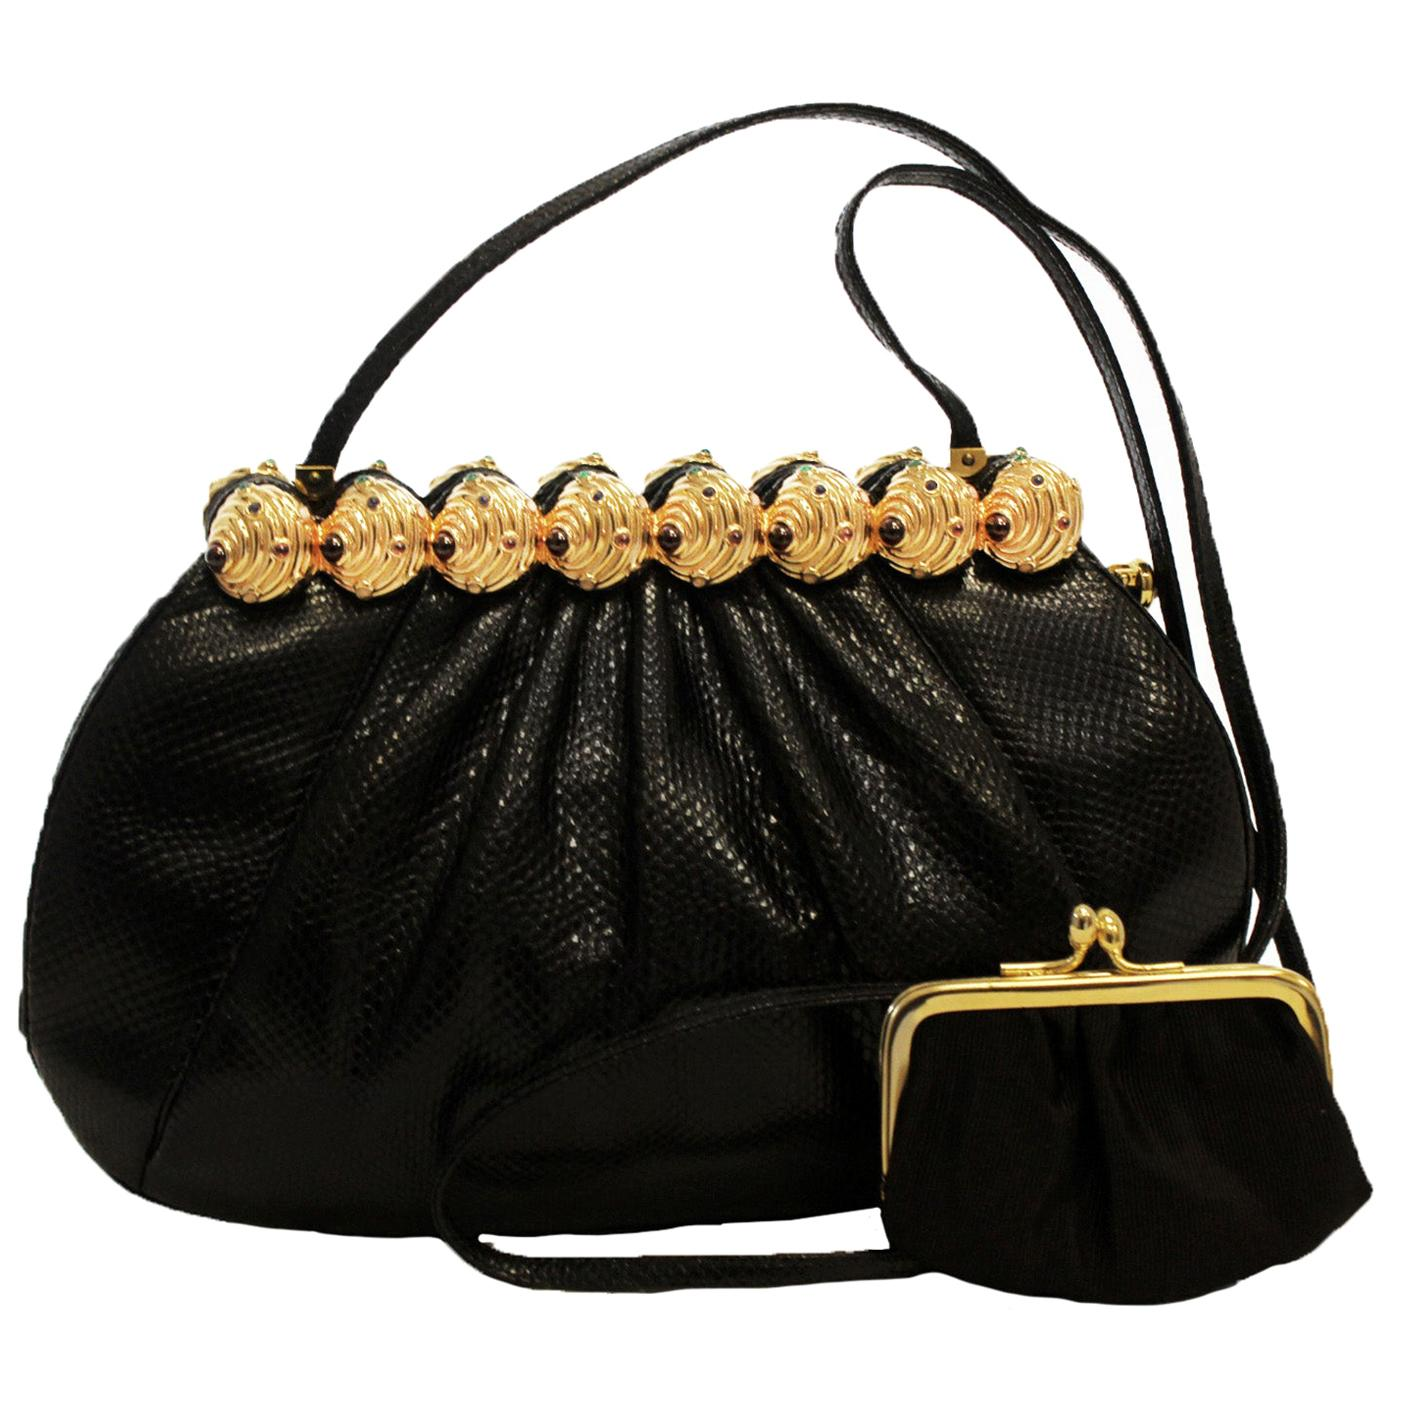 8def6ab9e6d2 Vintage Judith Leiber Handbags and Purses - 234 For Sale at 1stdibs